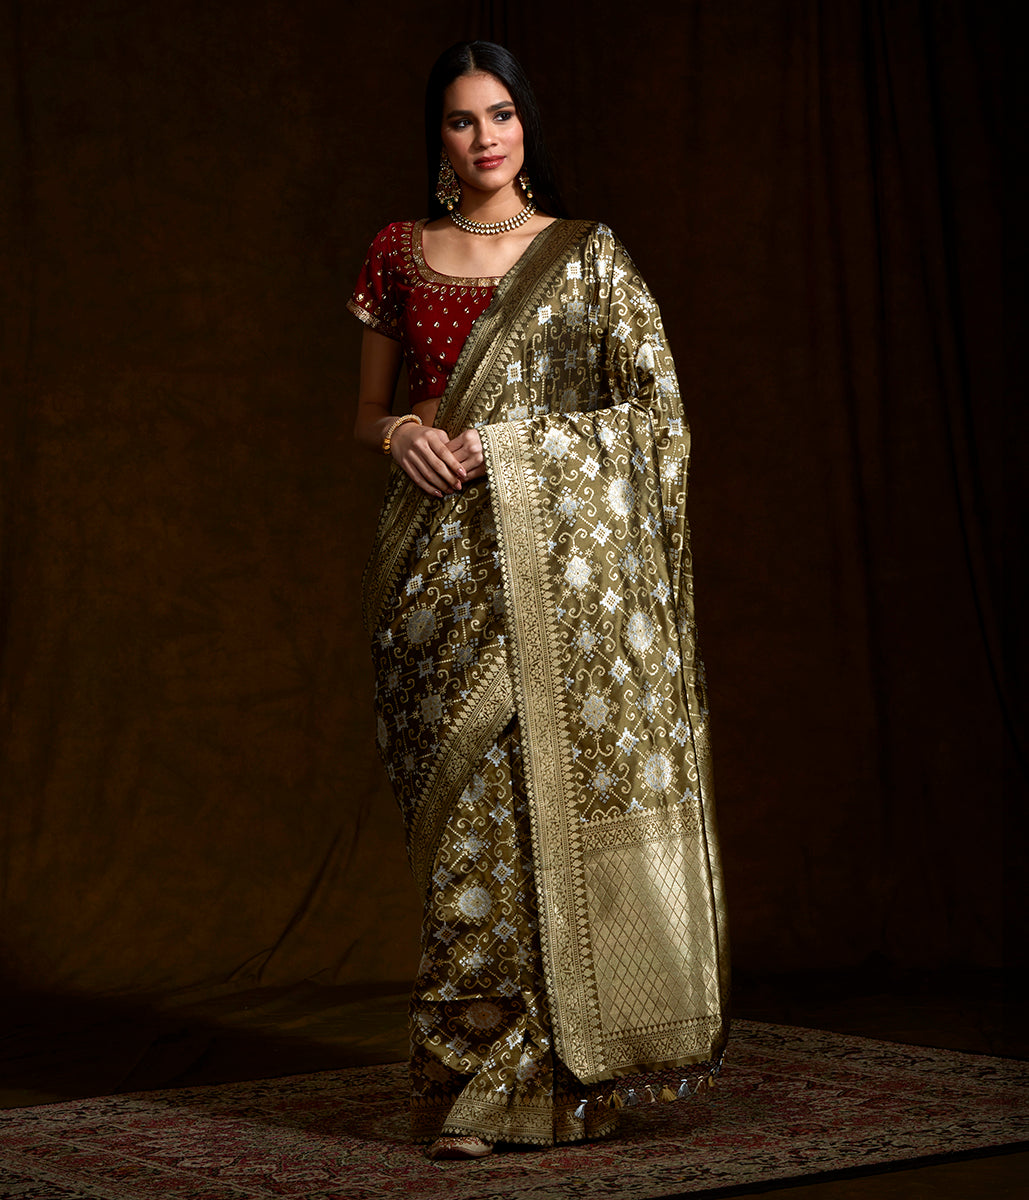 Olive Banarasi patola saree woven in rich dupion silk